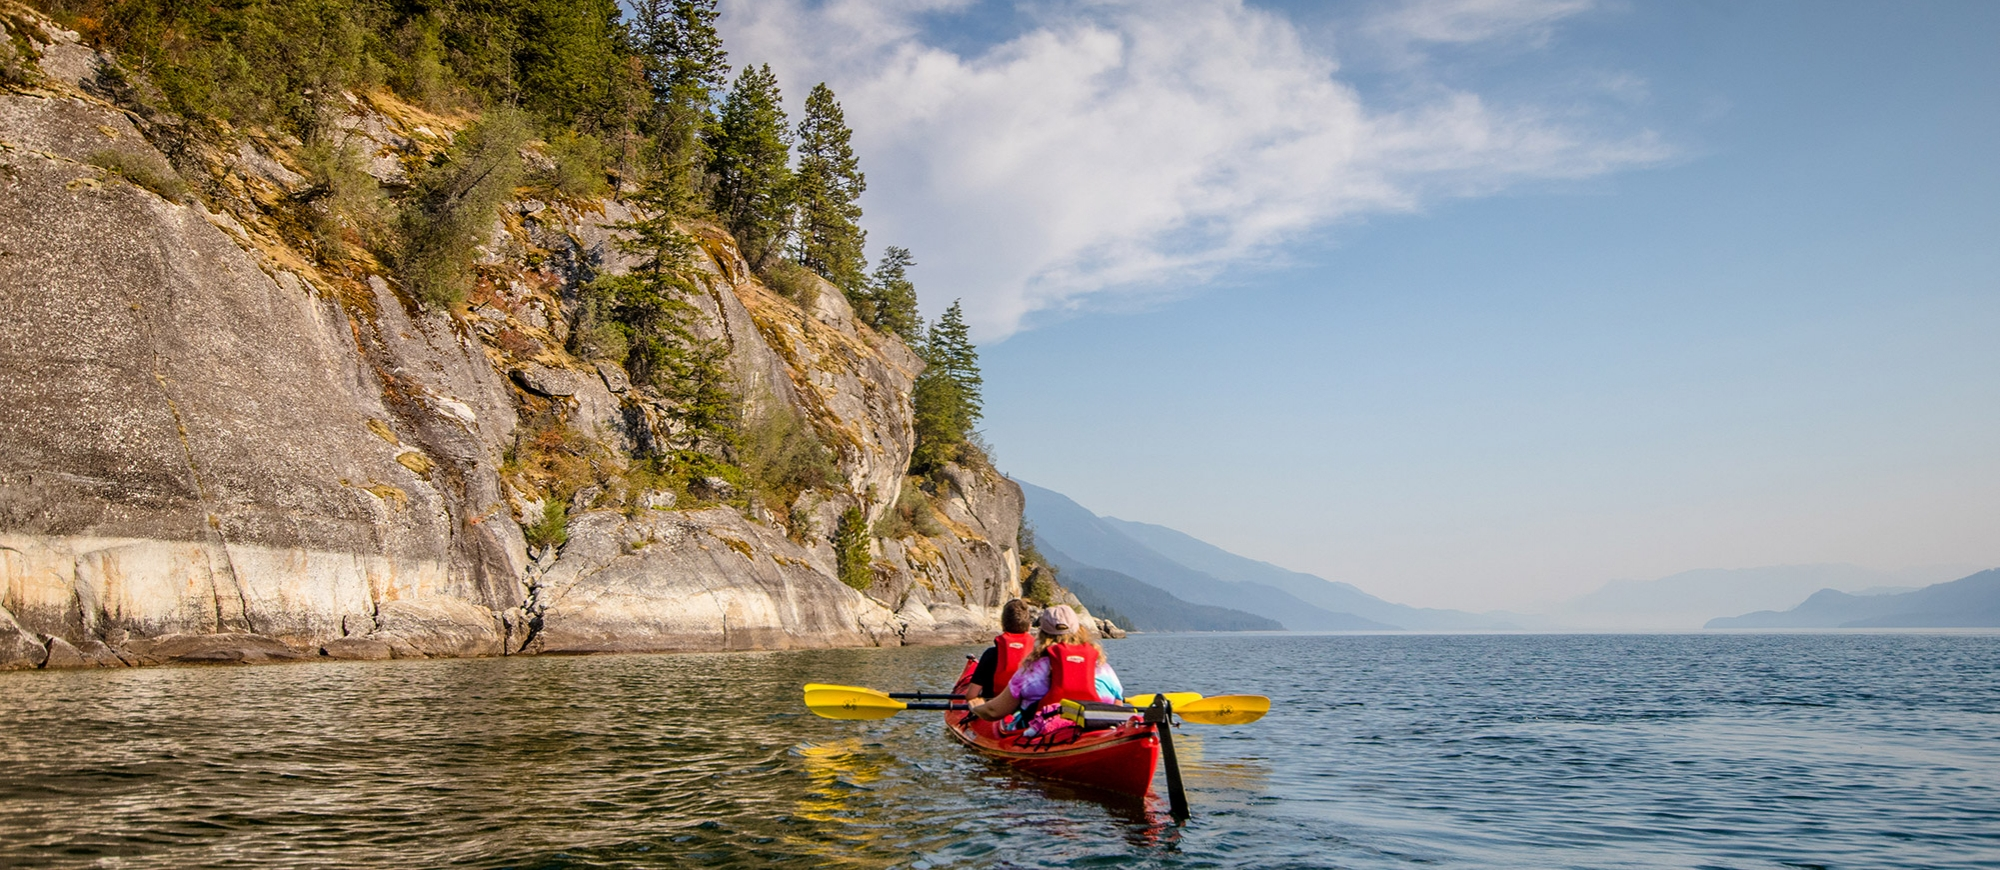 Two people on a double kayak paddling on Kootenay Lake near Kaslo, BC